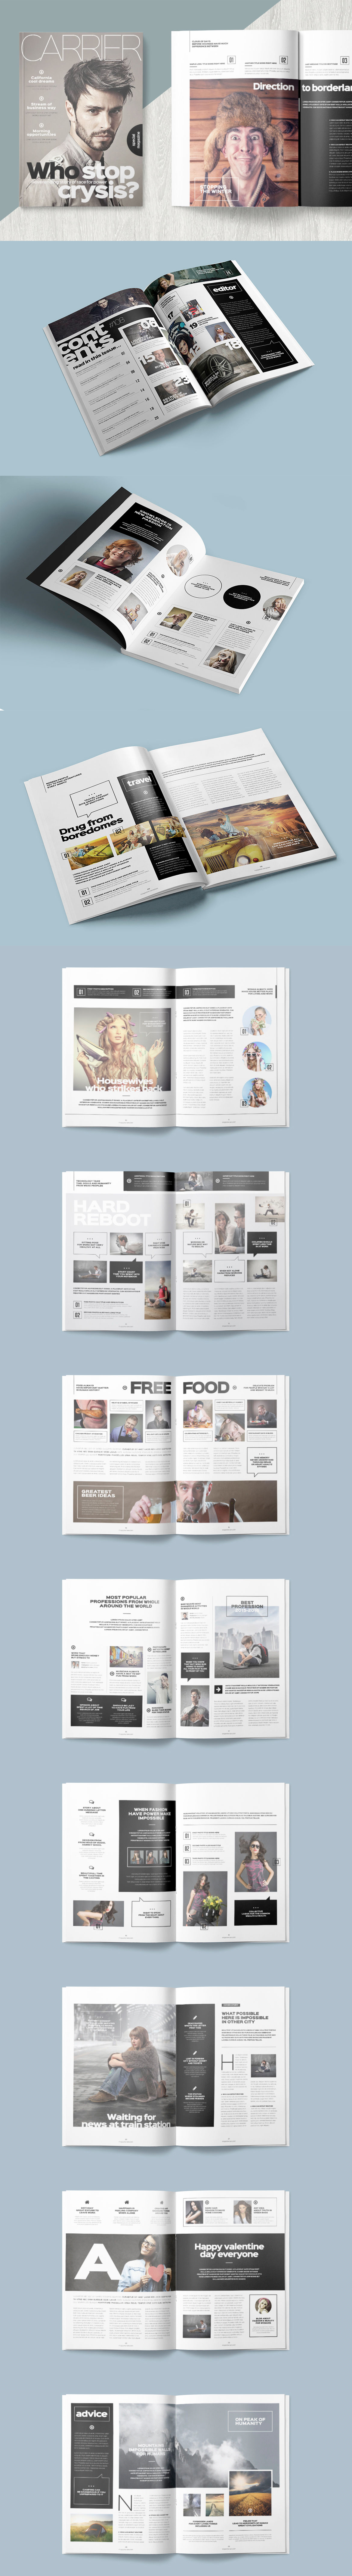 Professional and Clean Magazine Template InDesign INDD - 25 Pages ...